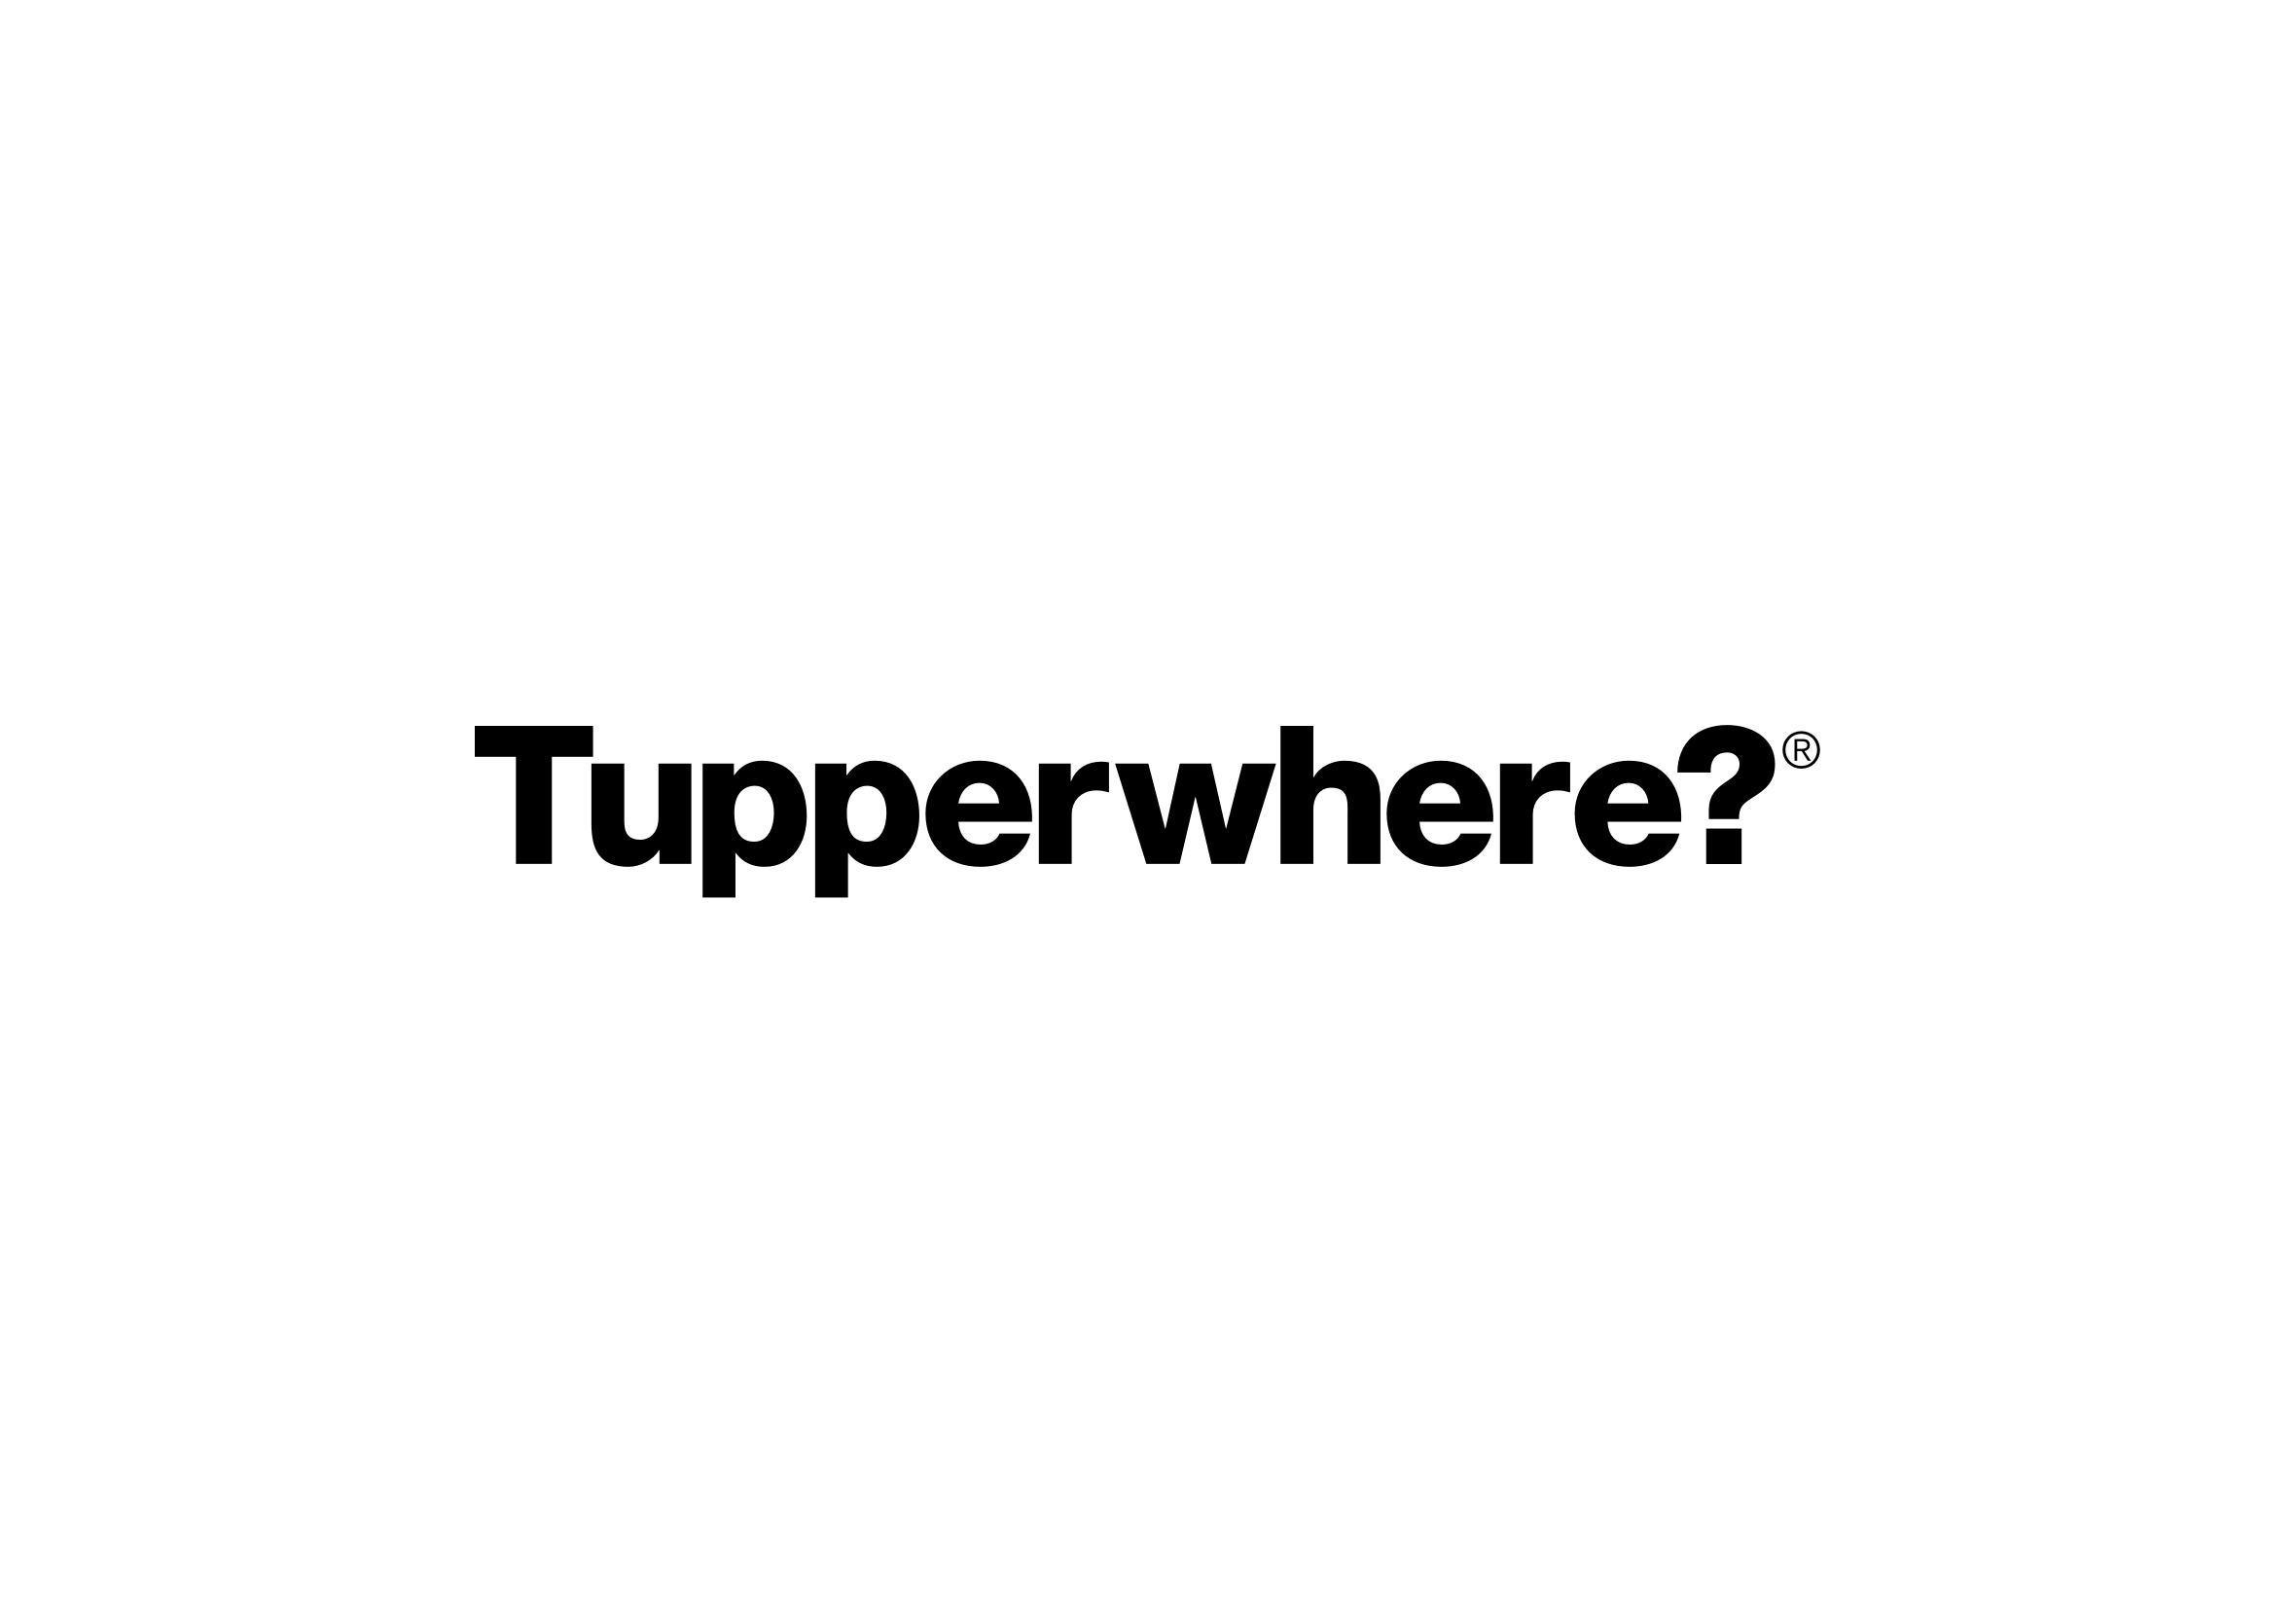 Tupperwhere?